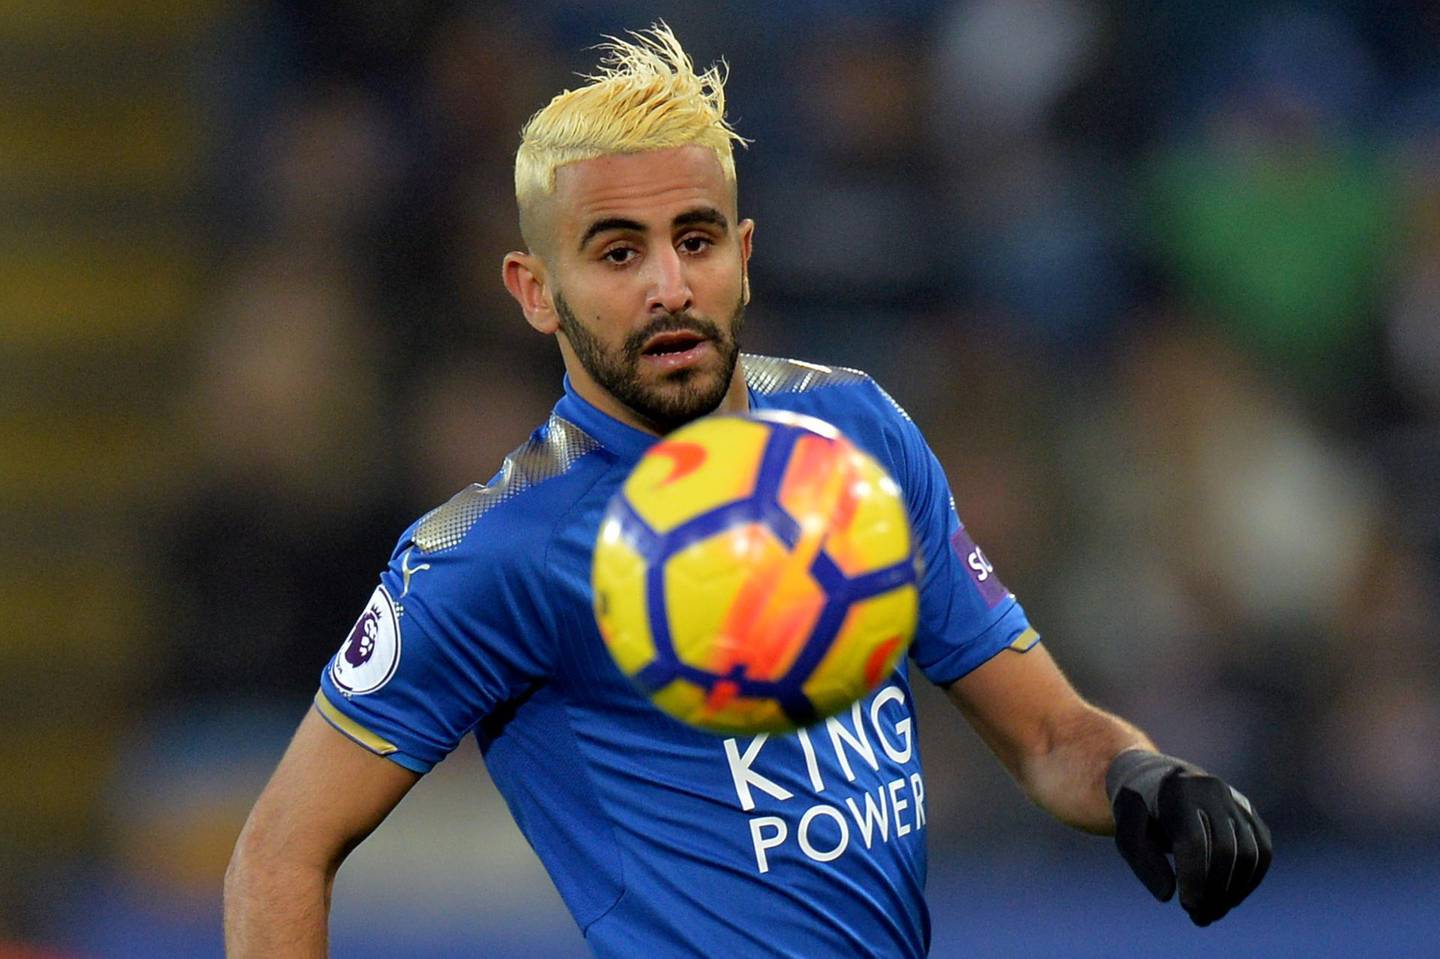 """Soccer Football - Premier League - Leicester City vs Burnley - King Power Stadium, Leicester, Britain - December 2, 2017   Leicester City's Riyad Mahrez in action    REUTERS/Peter Powell    EDITORIAL USE ONLY. No use with unauthorized audio, video, data, fixture lists, club/league logos or """"live"""" services. Online in-match use limited to 75 images, no video emulation. No use in betting, games or single club/league/player publications. Please contact your account representative for further details."""